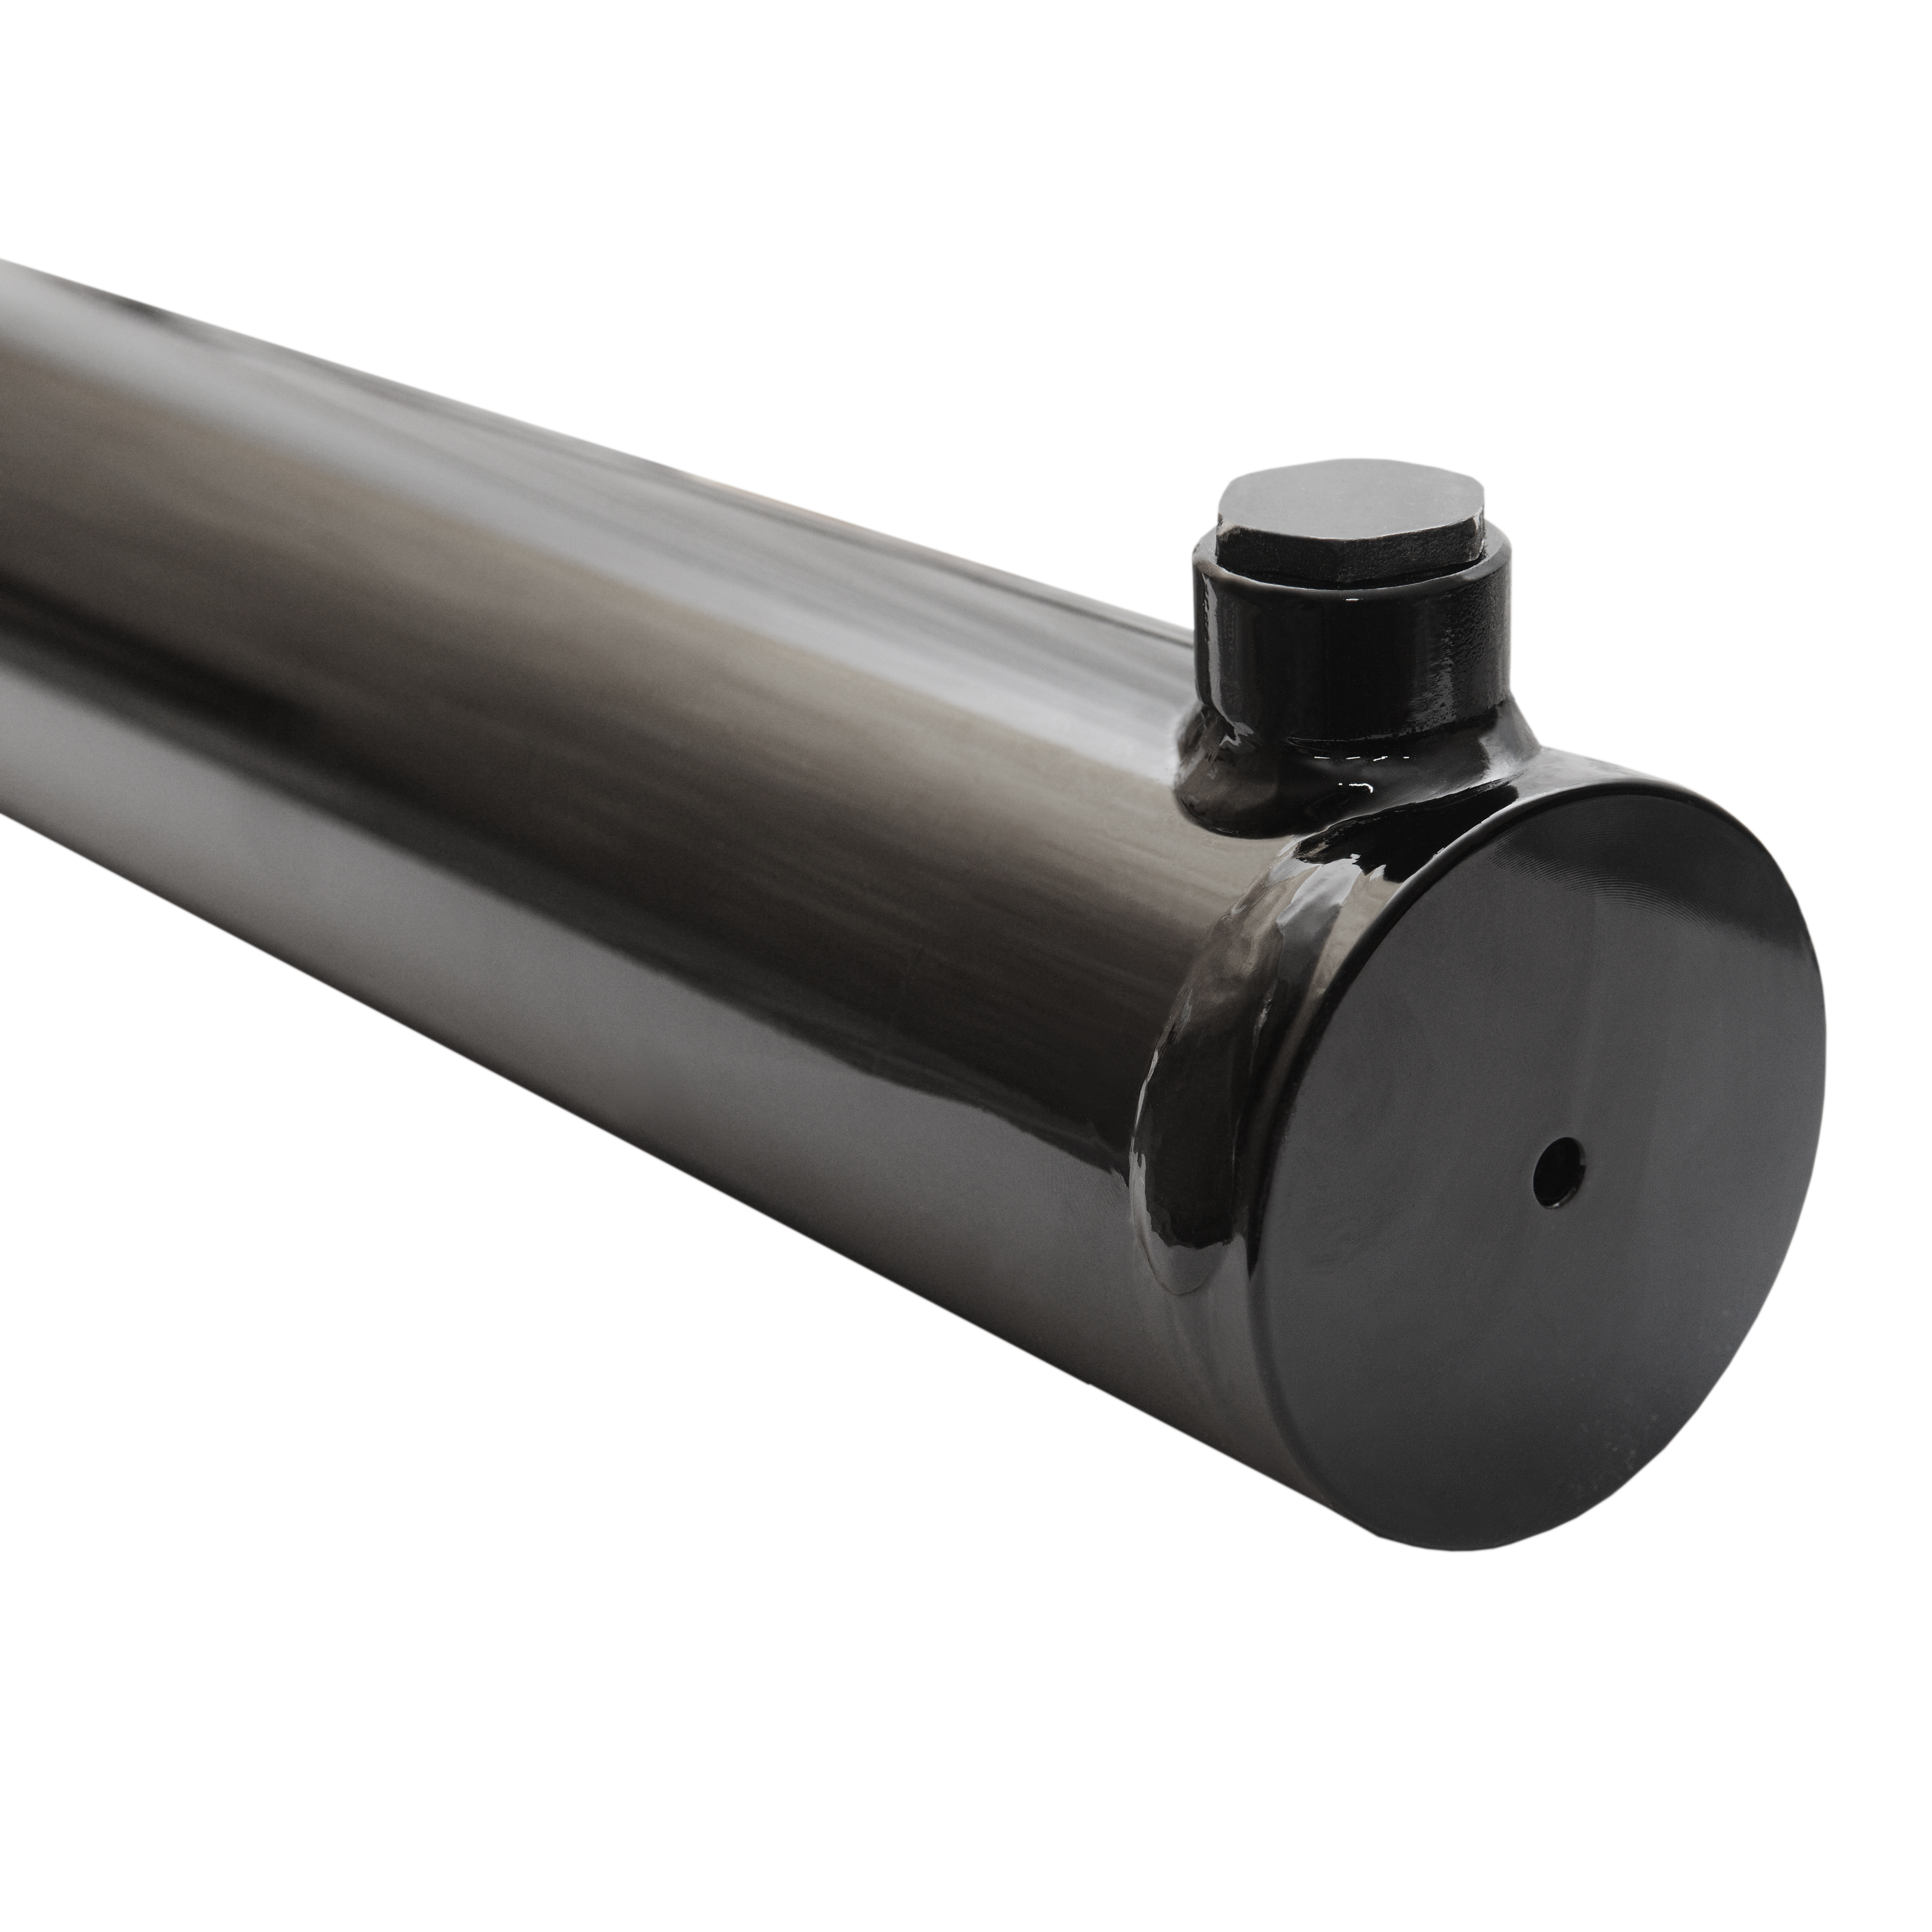 2.5 bore x 22 stroke hydraulic cylinder, welded universal double acting cylinder   Magister Hydraulics